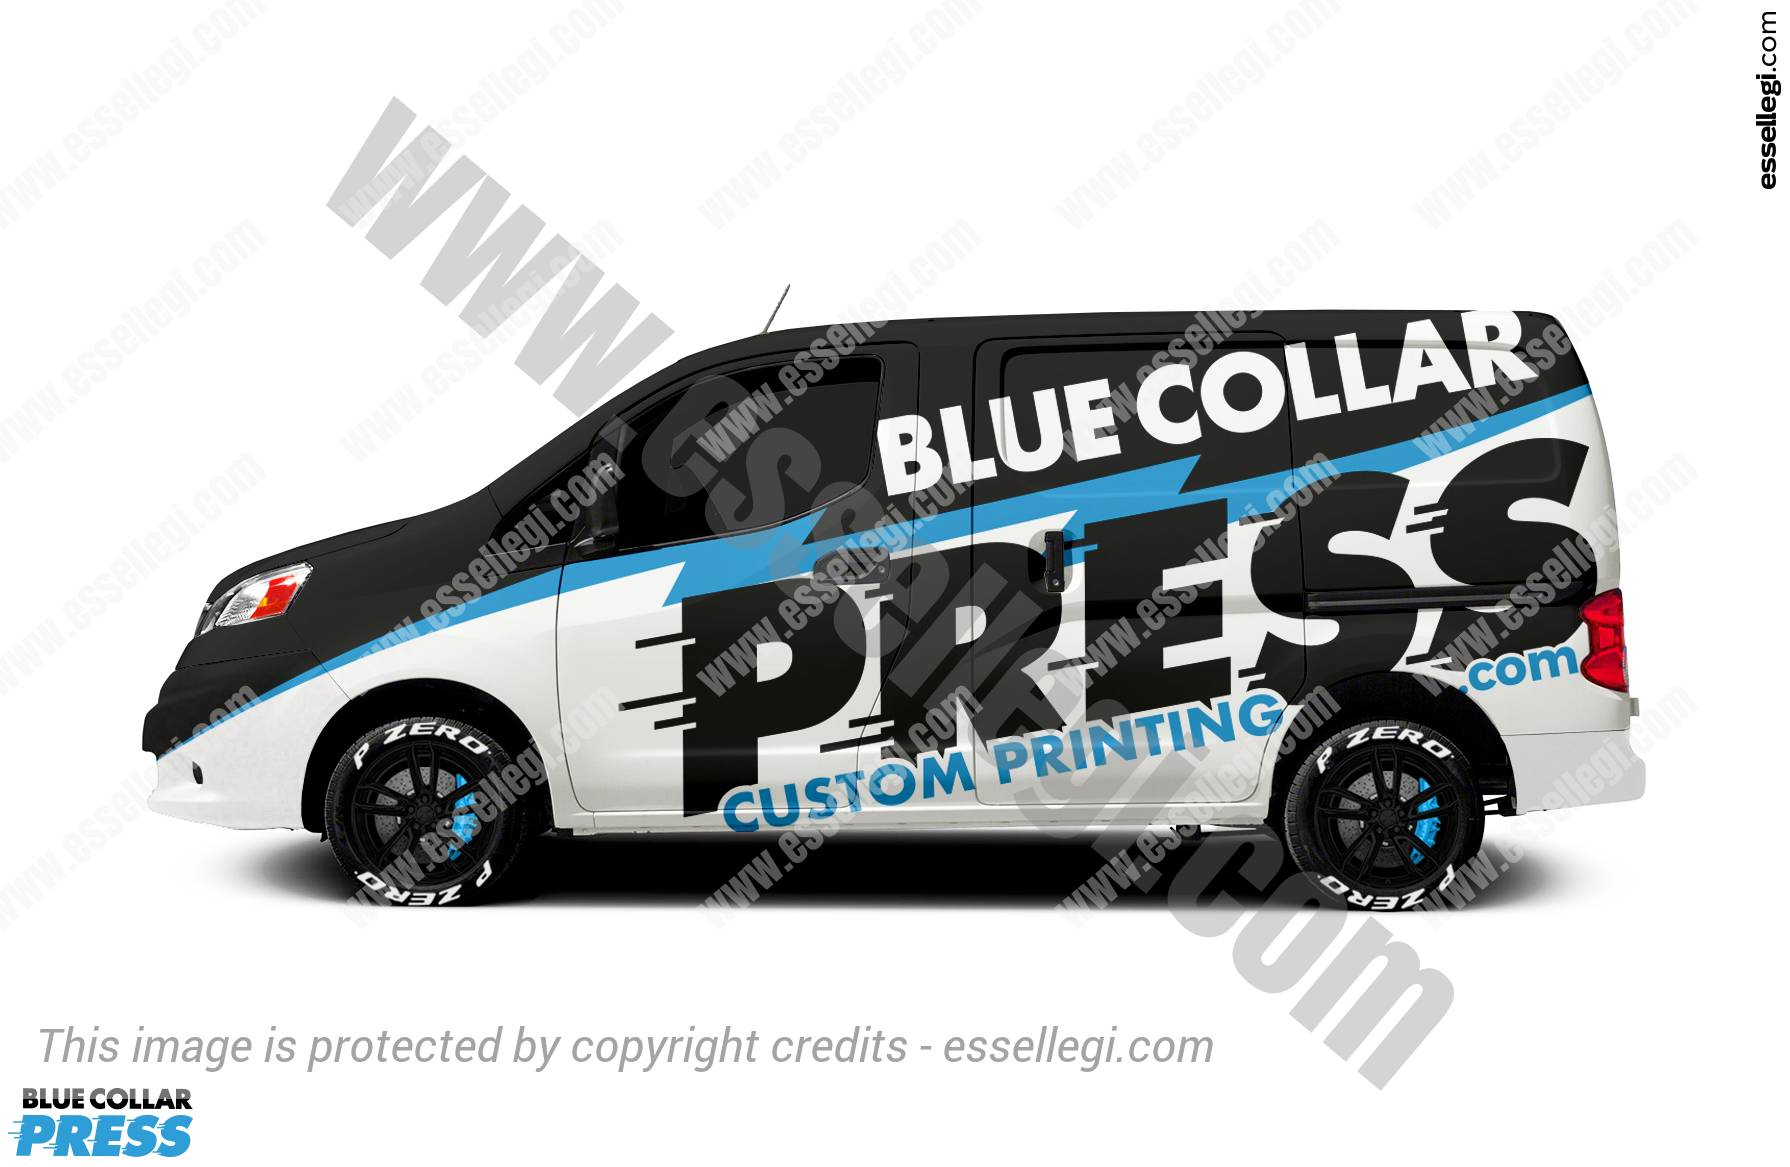 Nissan NV200 Wrap Design. Nissan NV200 | Van Wrap Design by Essellegi. Van Signs, Van Signage, Van Wrapping, Van Signwriting, Van Wrap Designer, Signs for Van, Van Logo, Van Graphic by Essellegi.